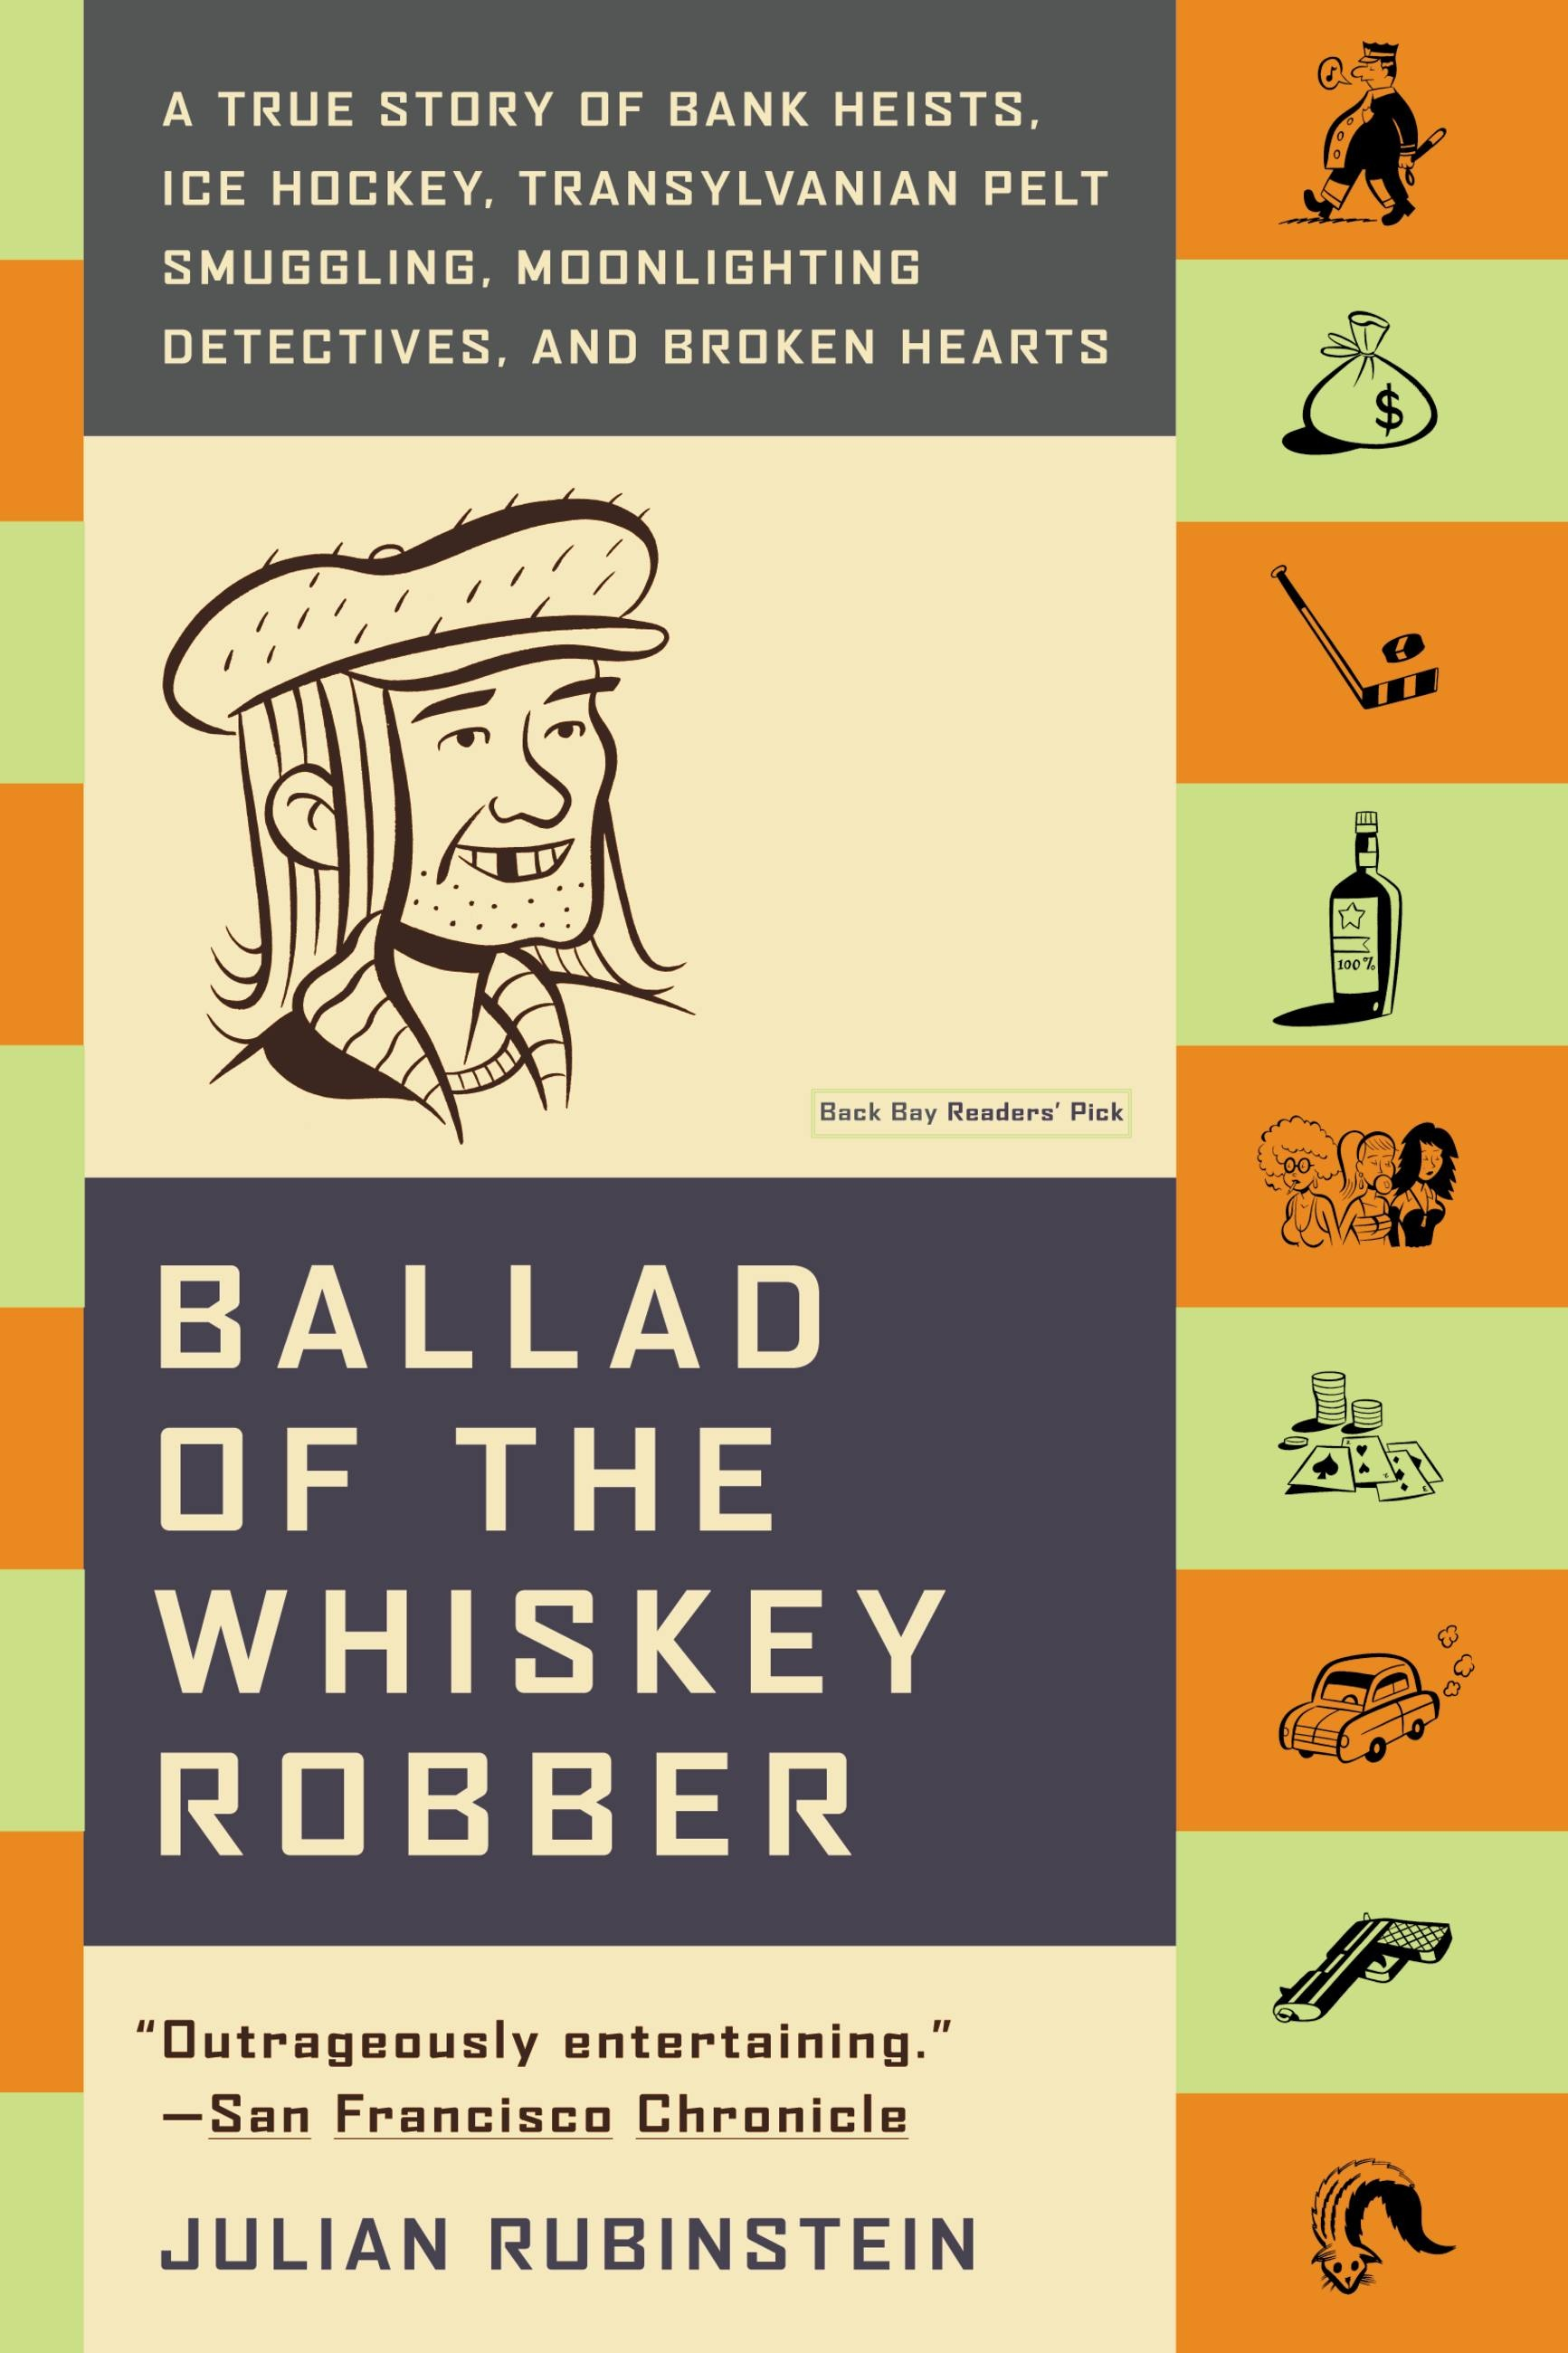 Ballad of the Whiskey Robber